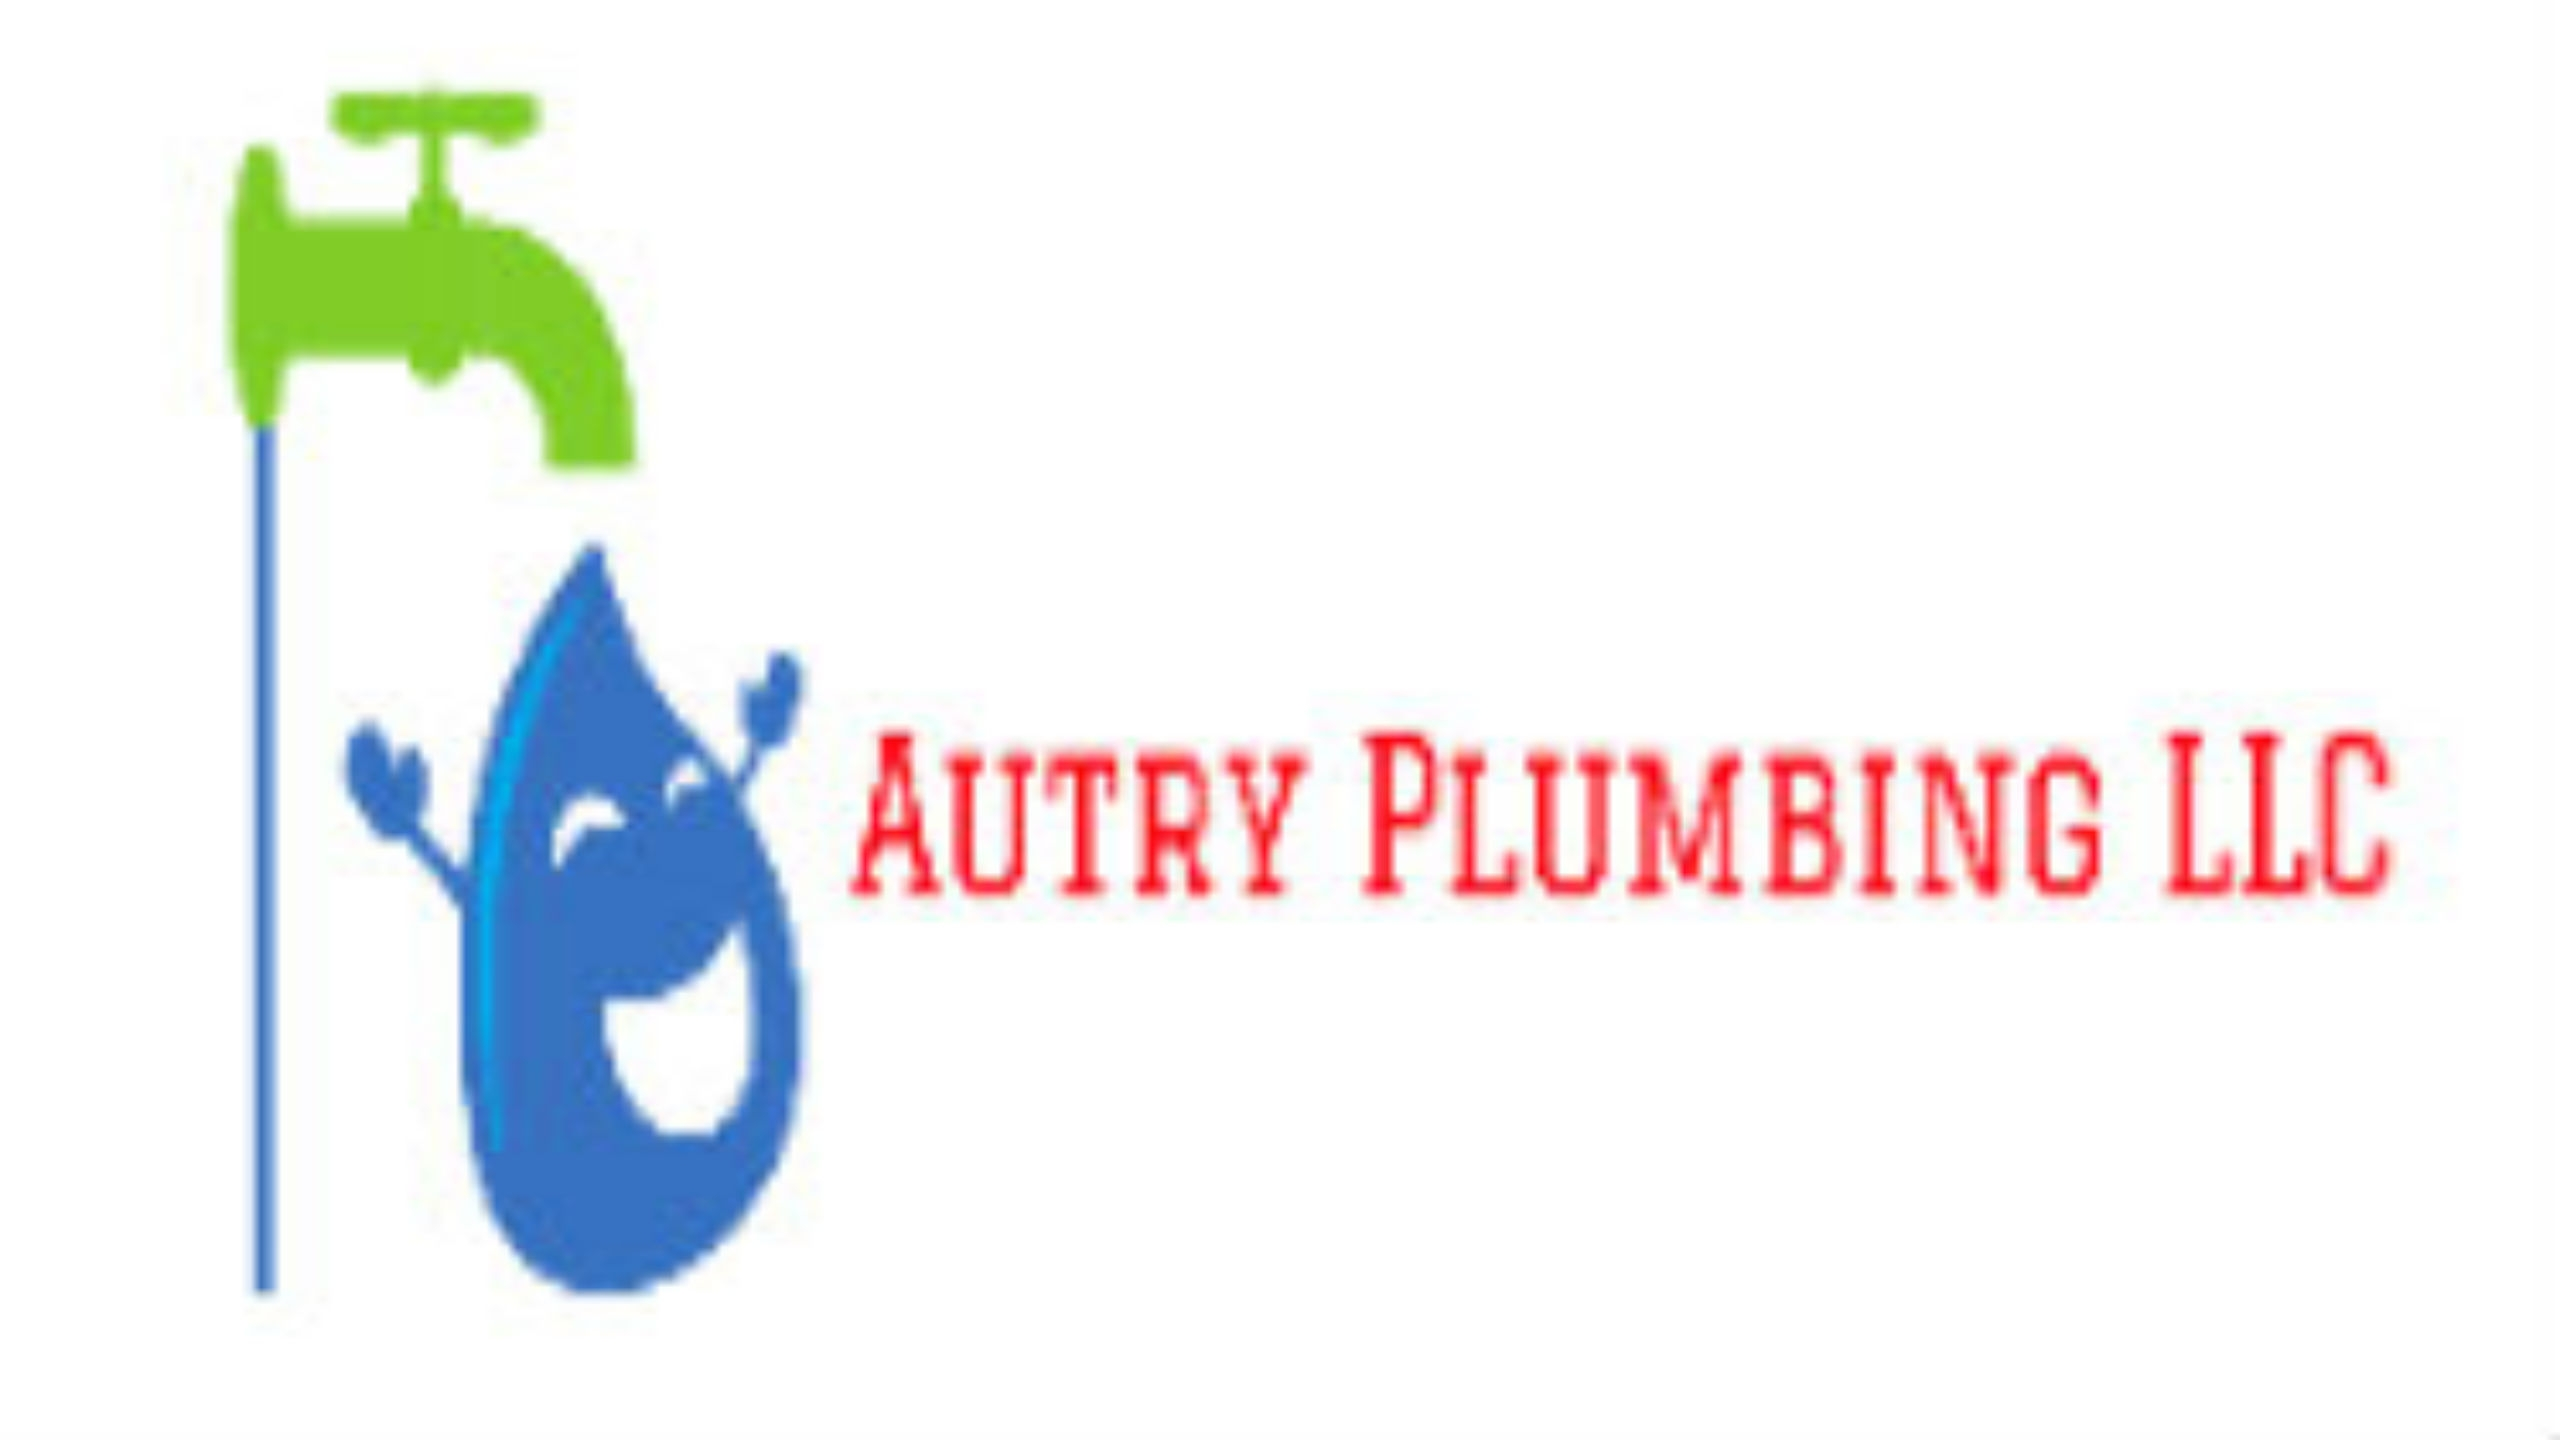 Autry Plumbing - Leicester (@autryplumbing) Cover Image